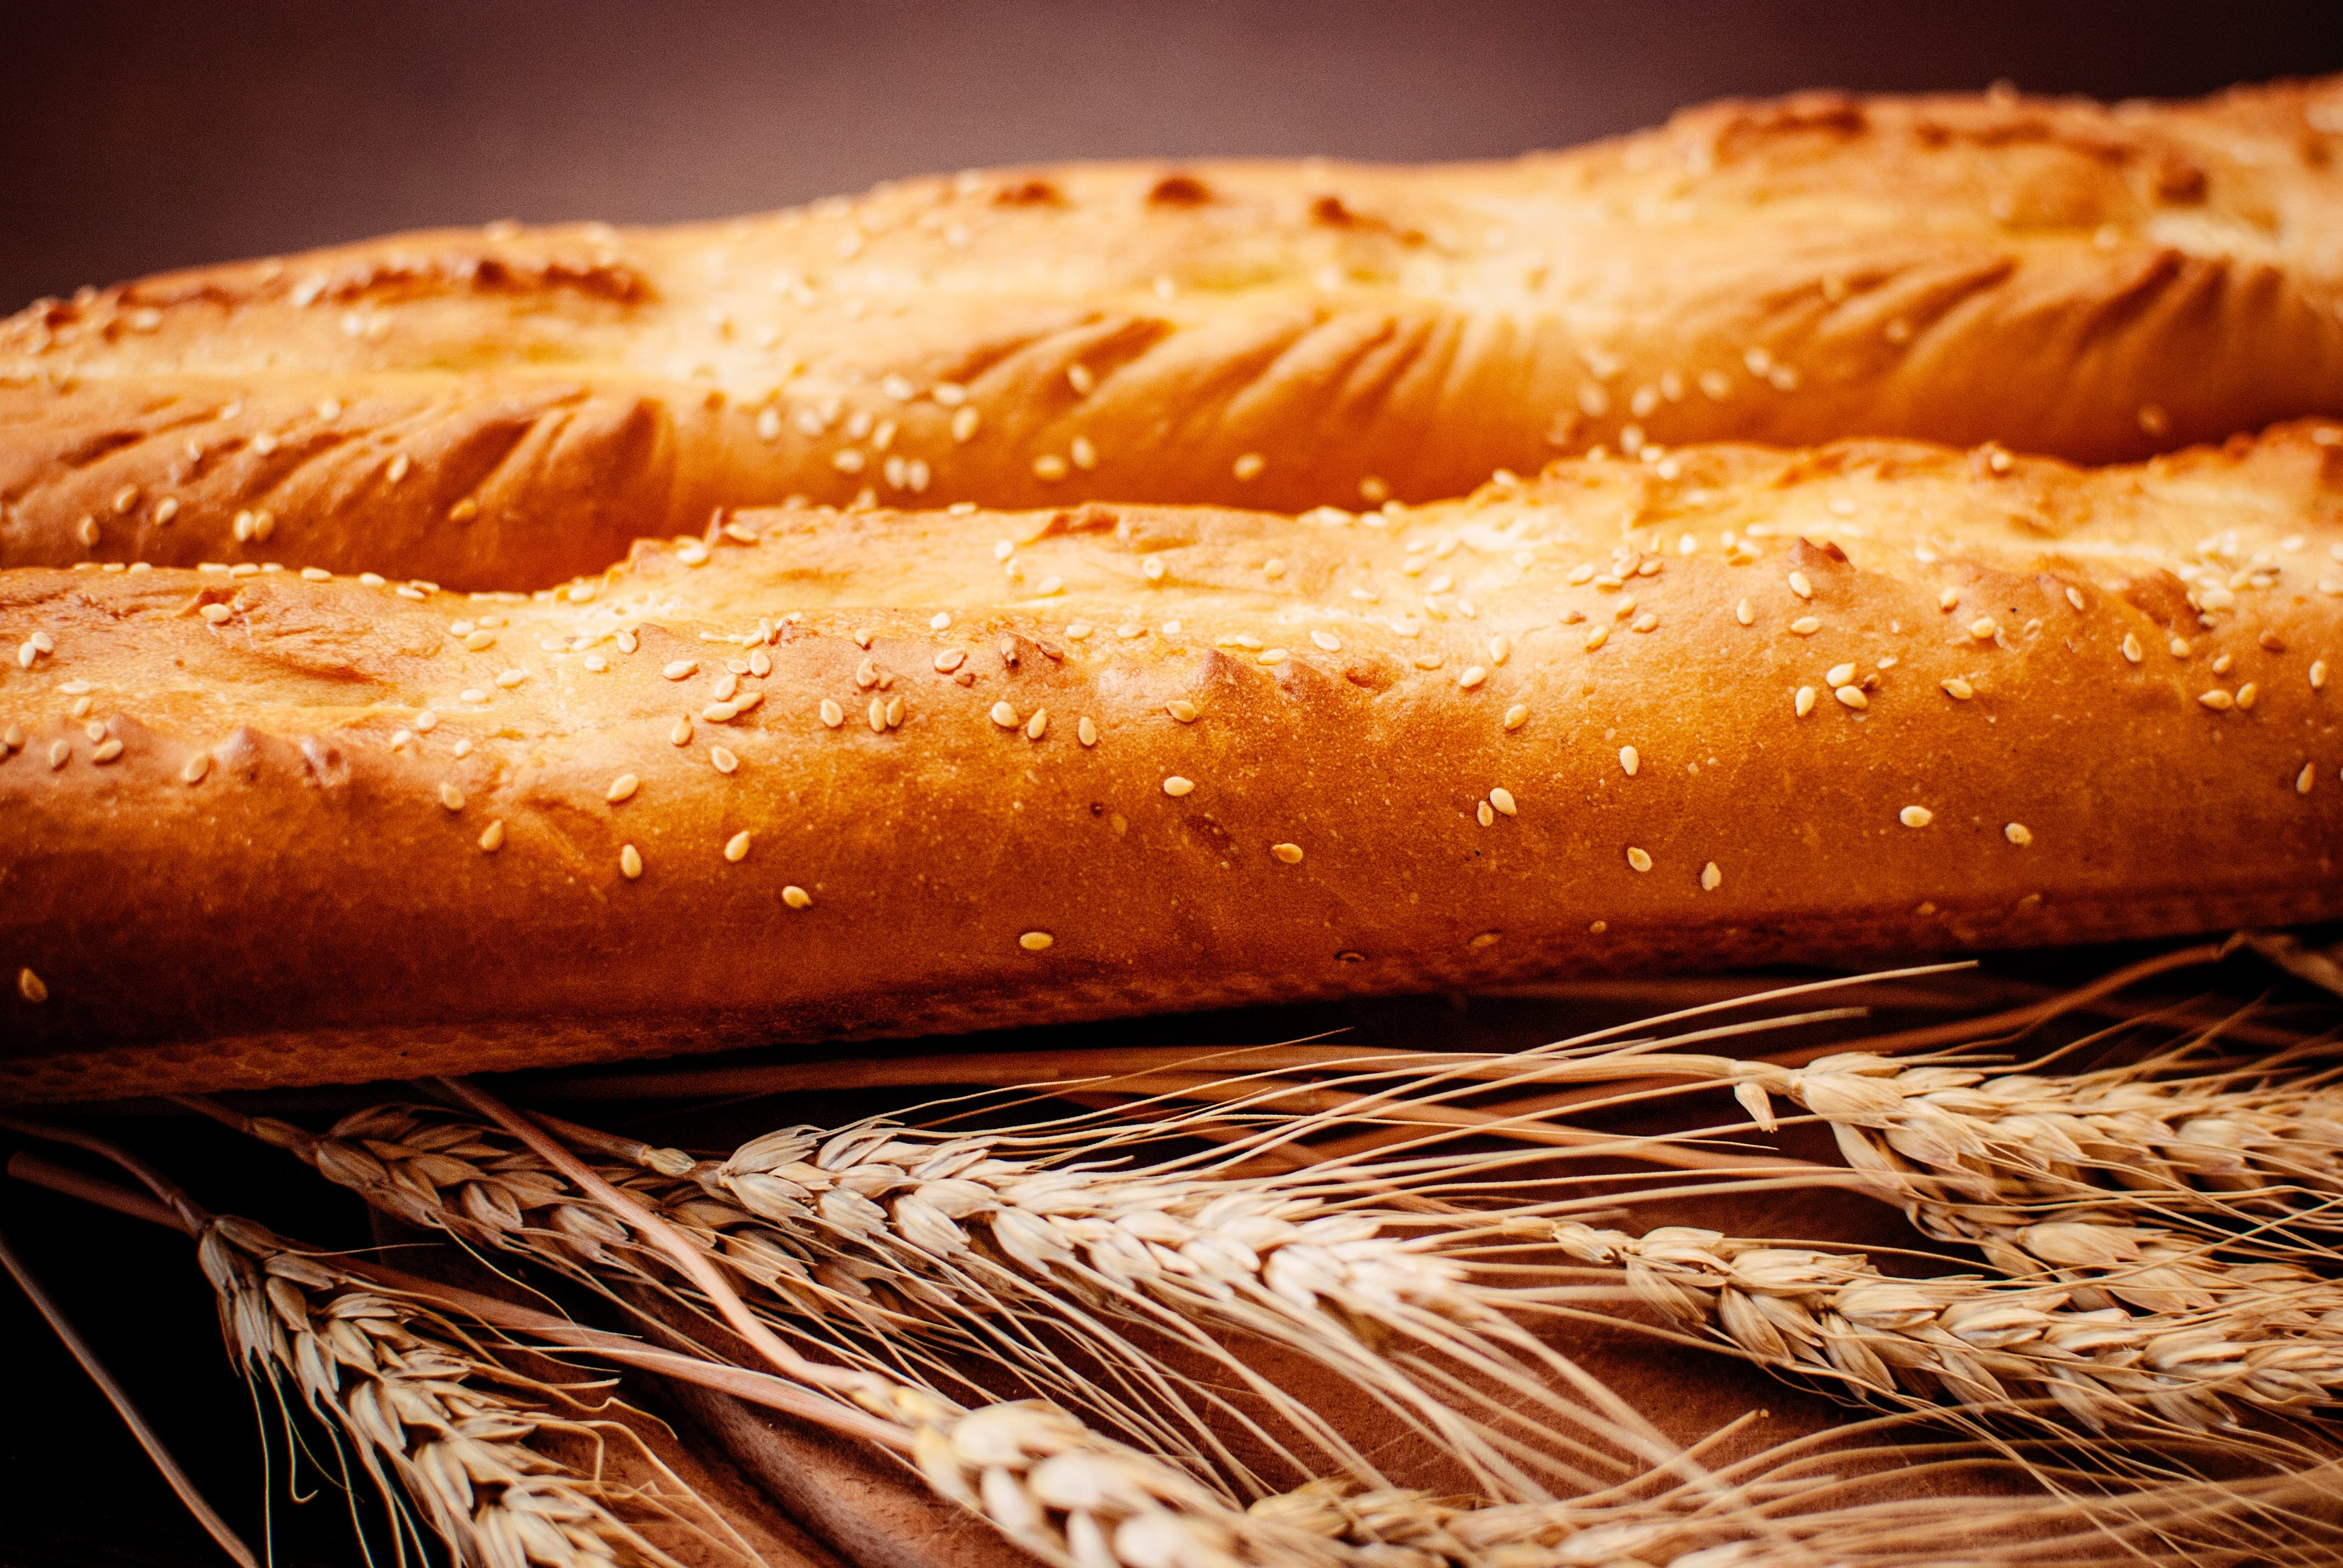 Photography of Baked Breads